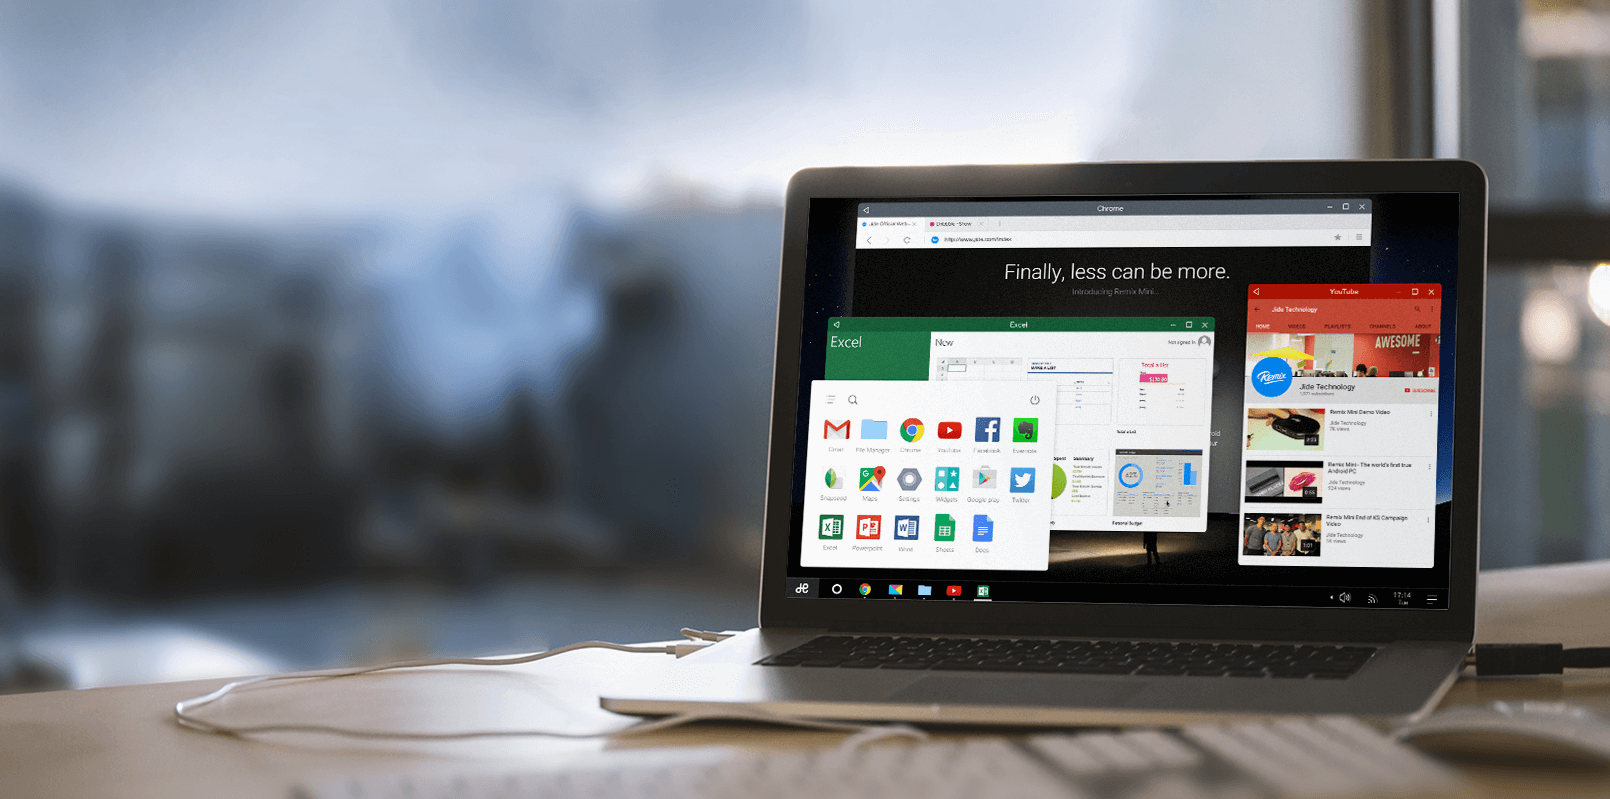 Remix OS 2 0 is a full desktop operating system that runs